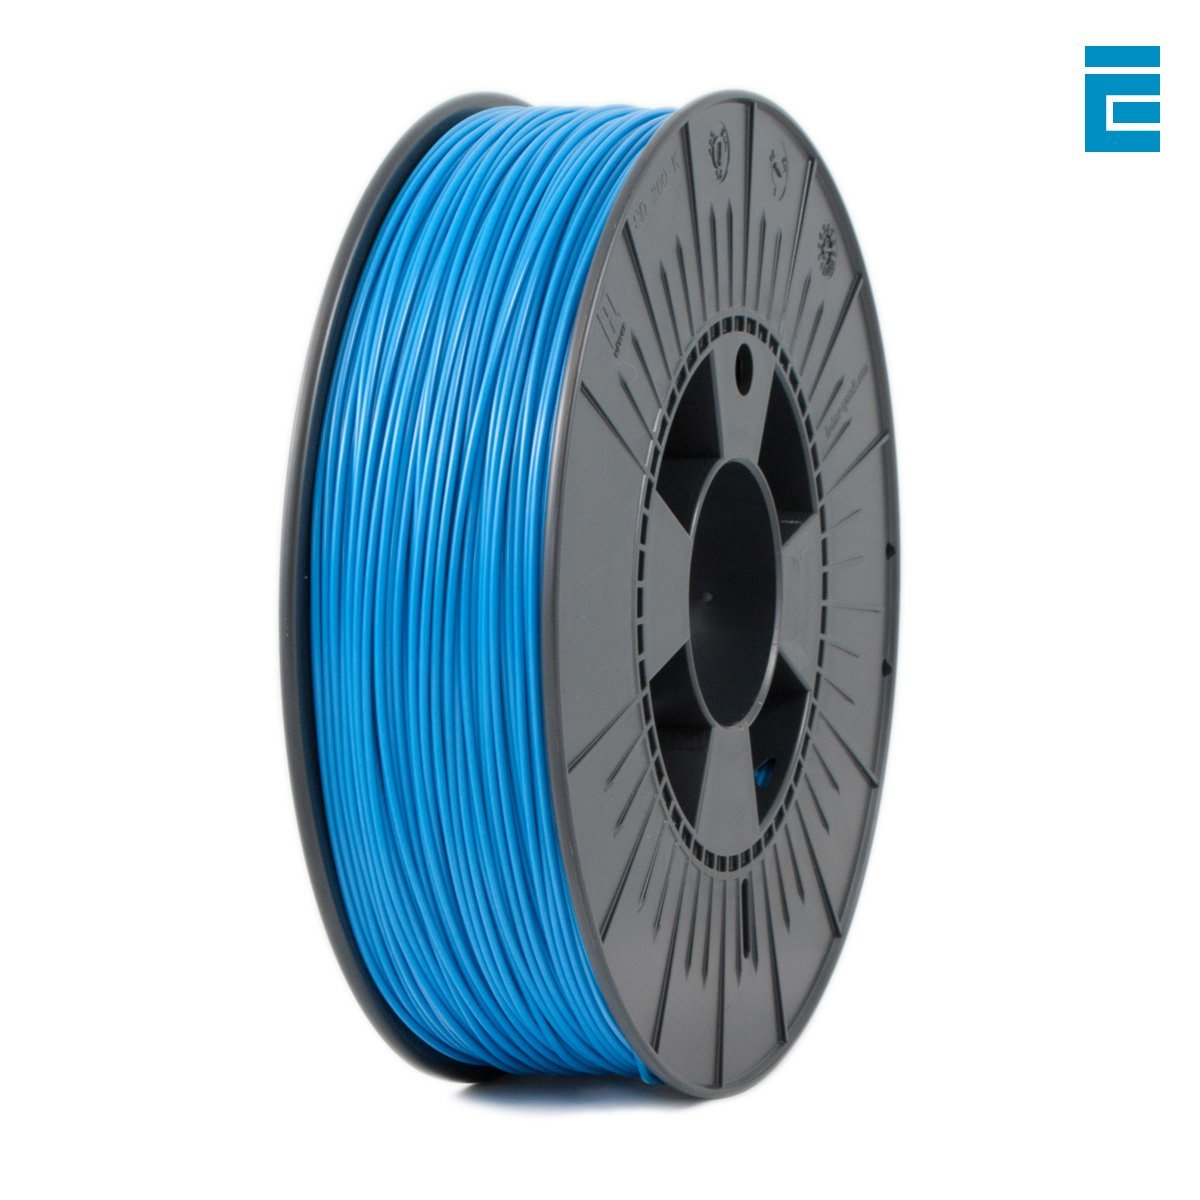 Ice Filaments ICEFIL1PLA007 Filamento PLA, 1,75 mm, 0,75 kg, Azul Dutch Filaments